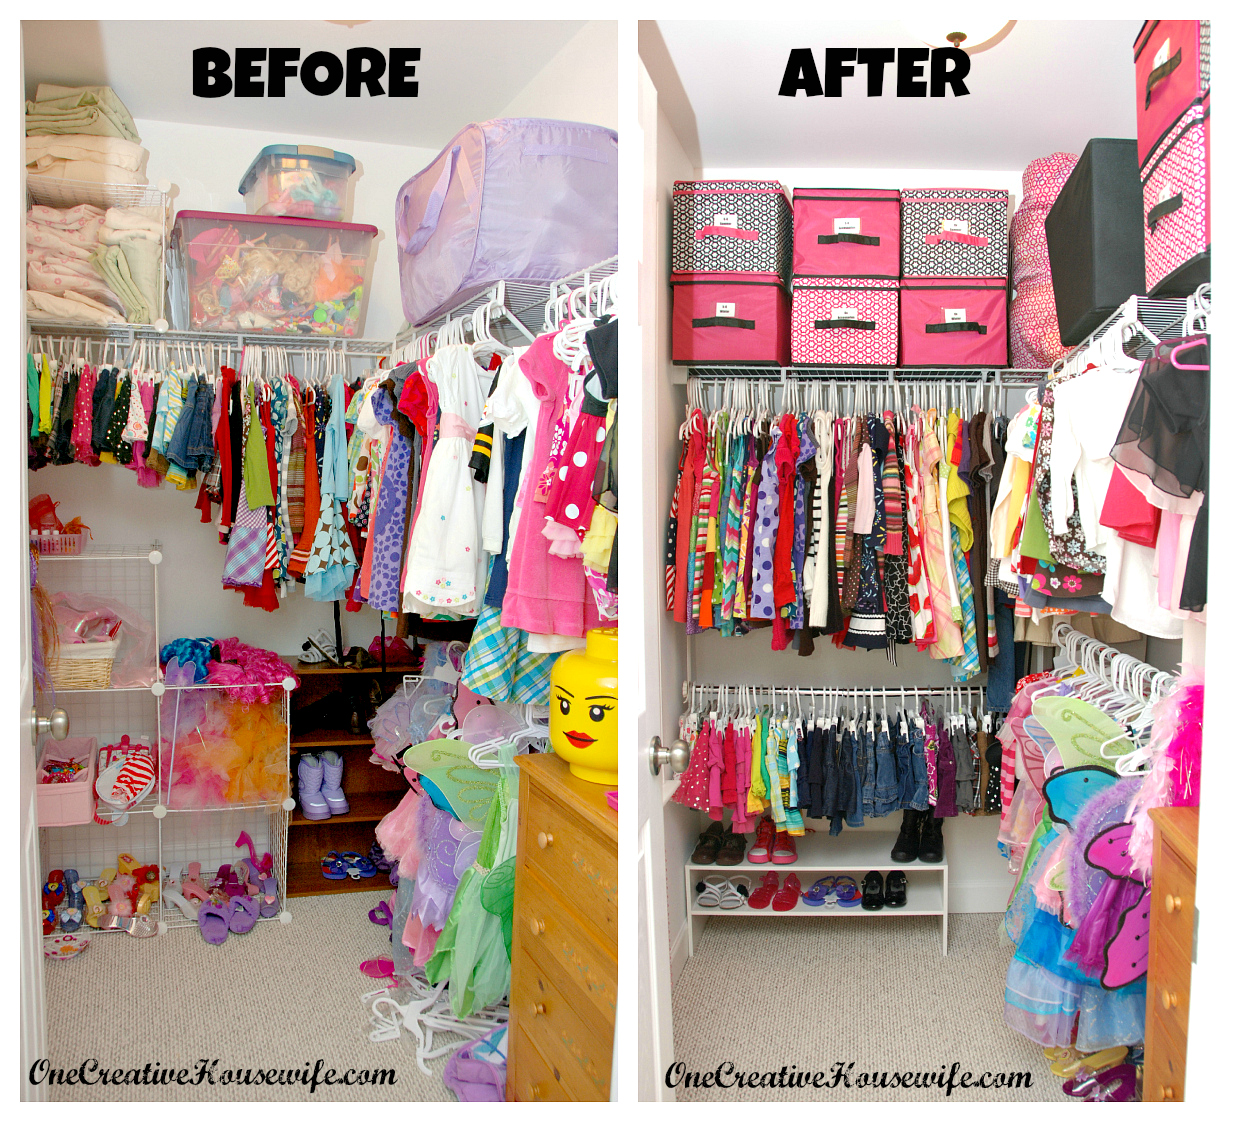 Her Closet Is A Little Strange. It Has A Window That Makes The Majority Of  One Wall Basically Unusable. To Begin, I Removed Everything From Her Closet,  ...